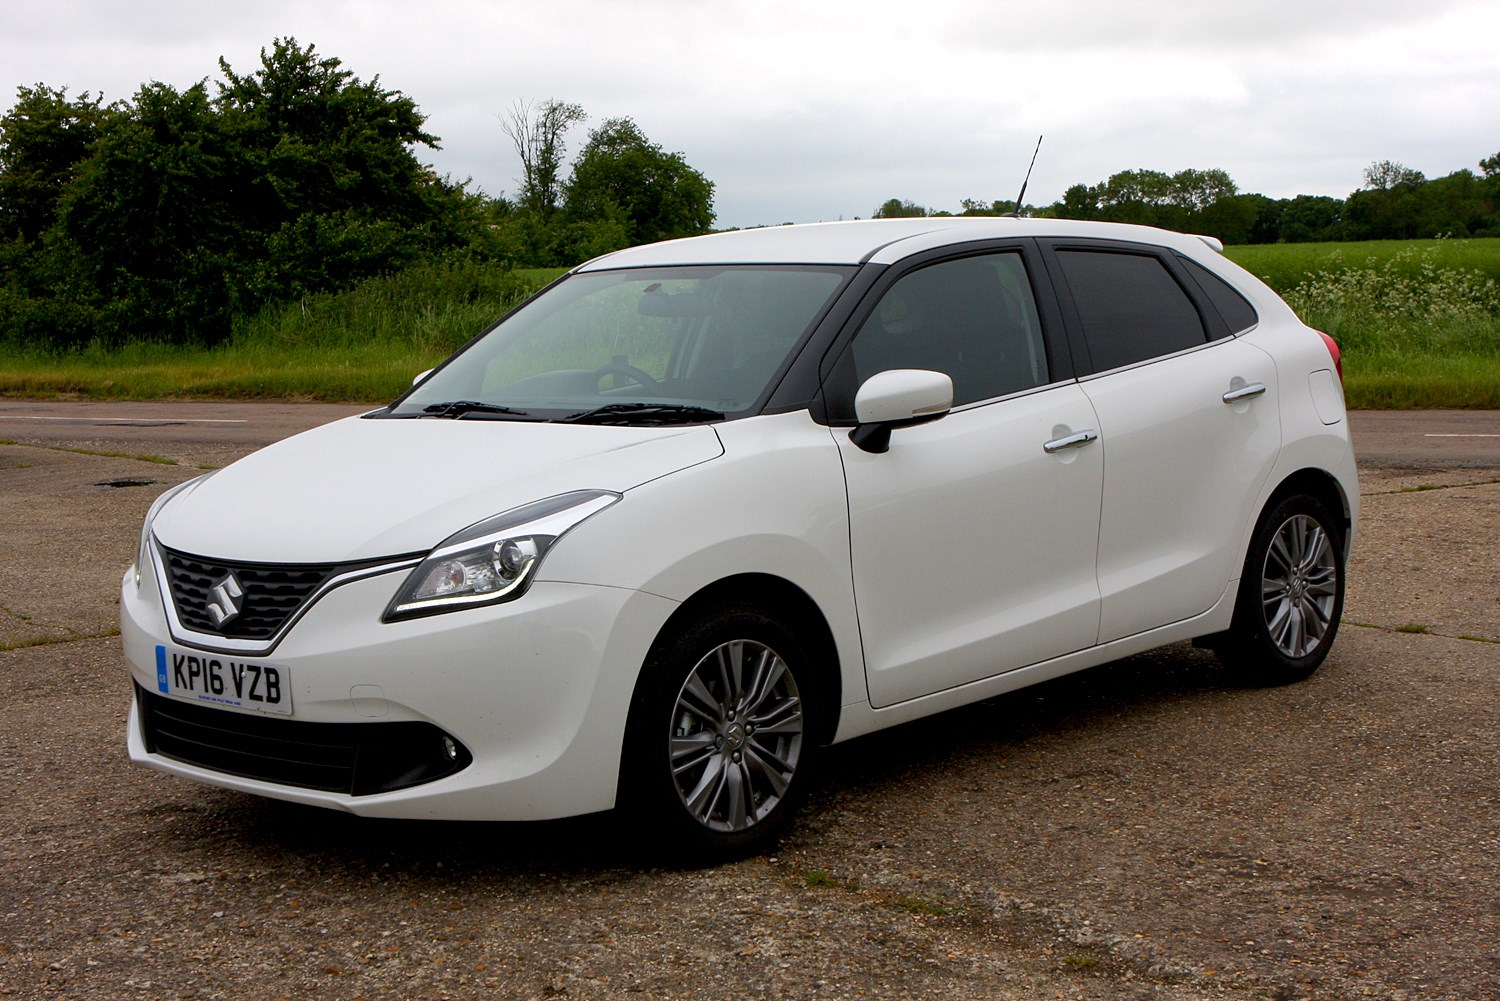 suzuki baleno hatchback 2016 photos parkers. Black Bedroom Furniture Sets. Home Design Ideas